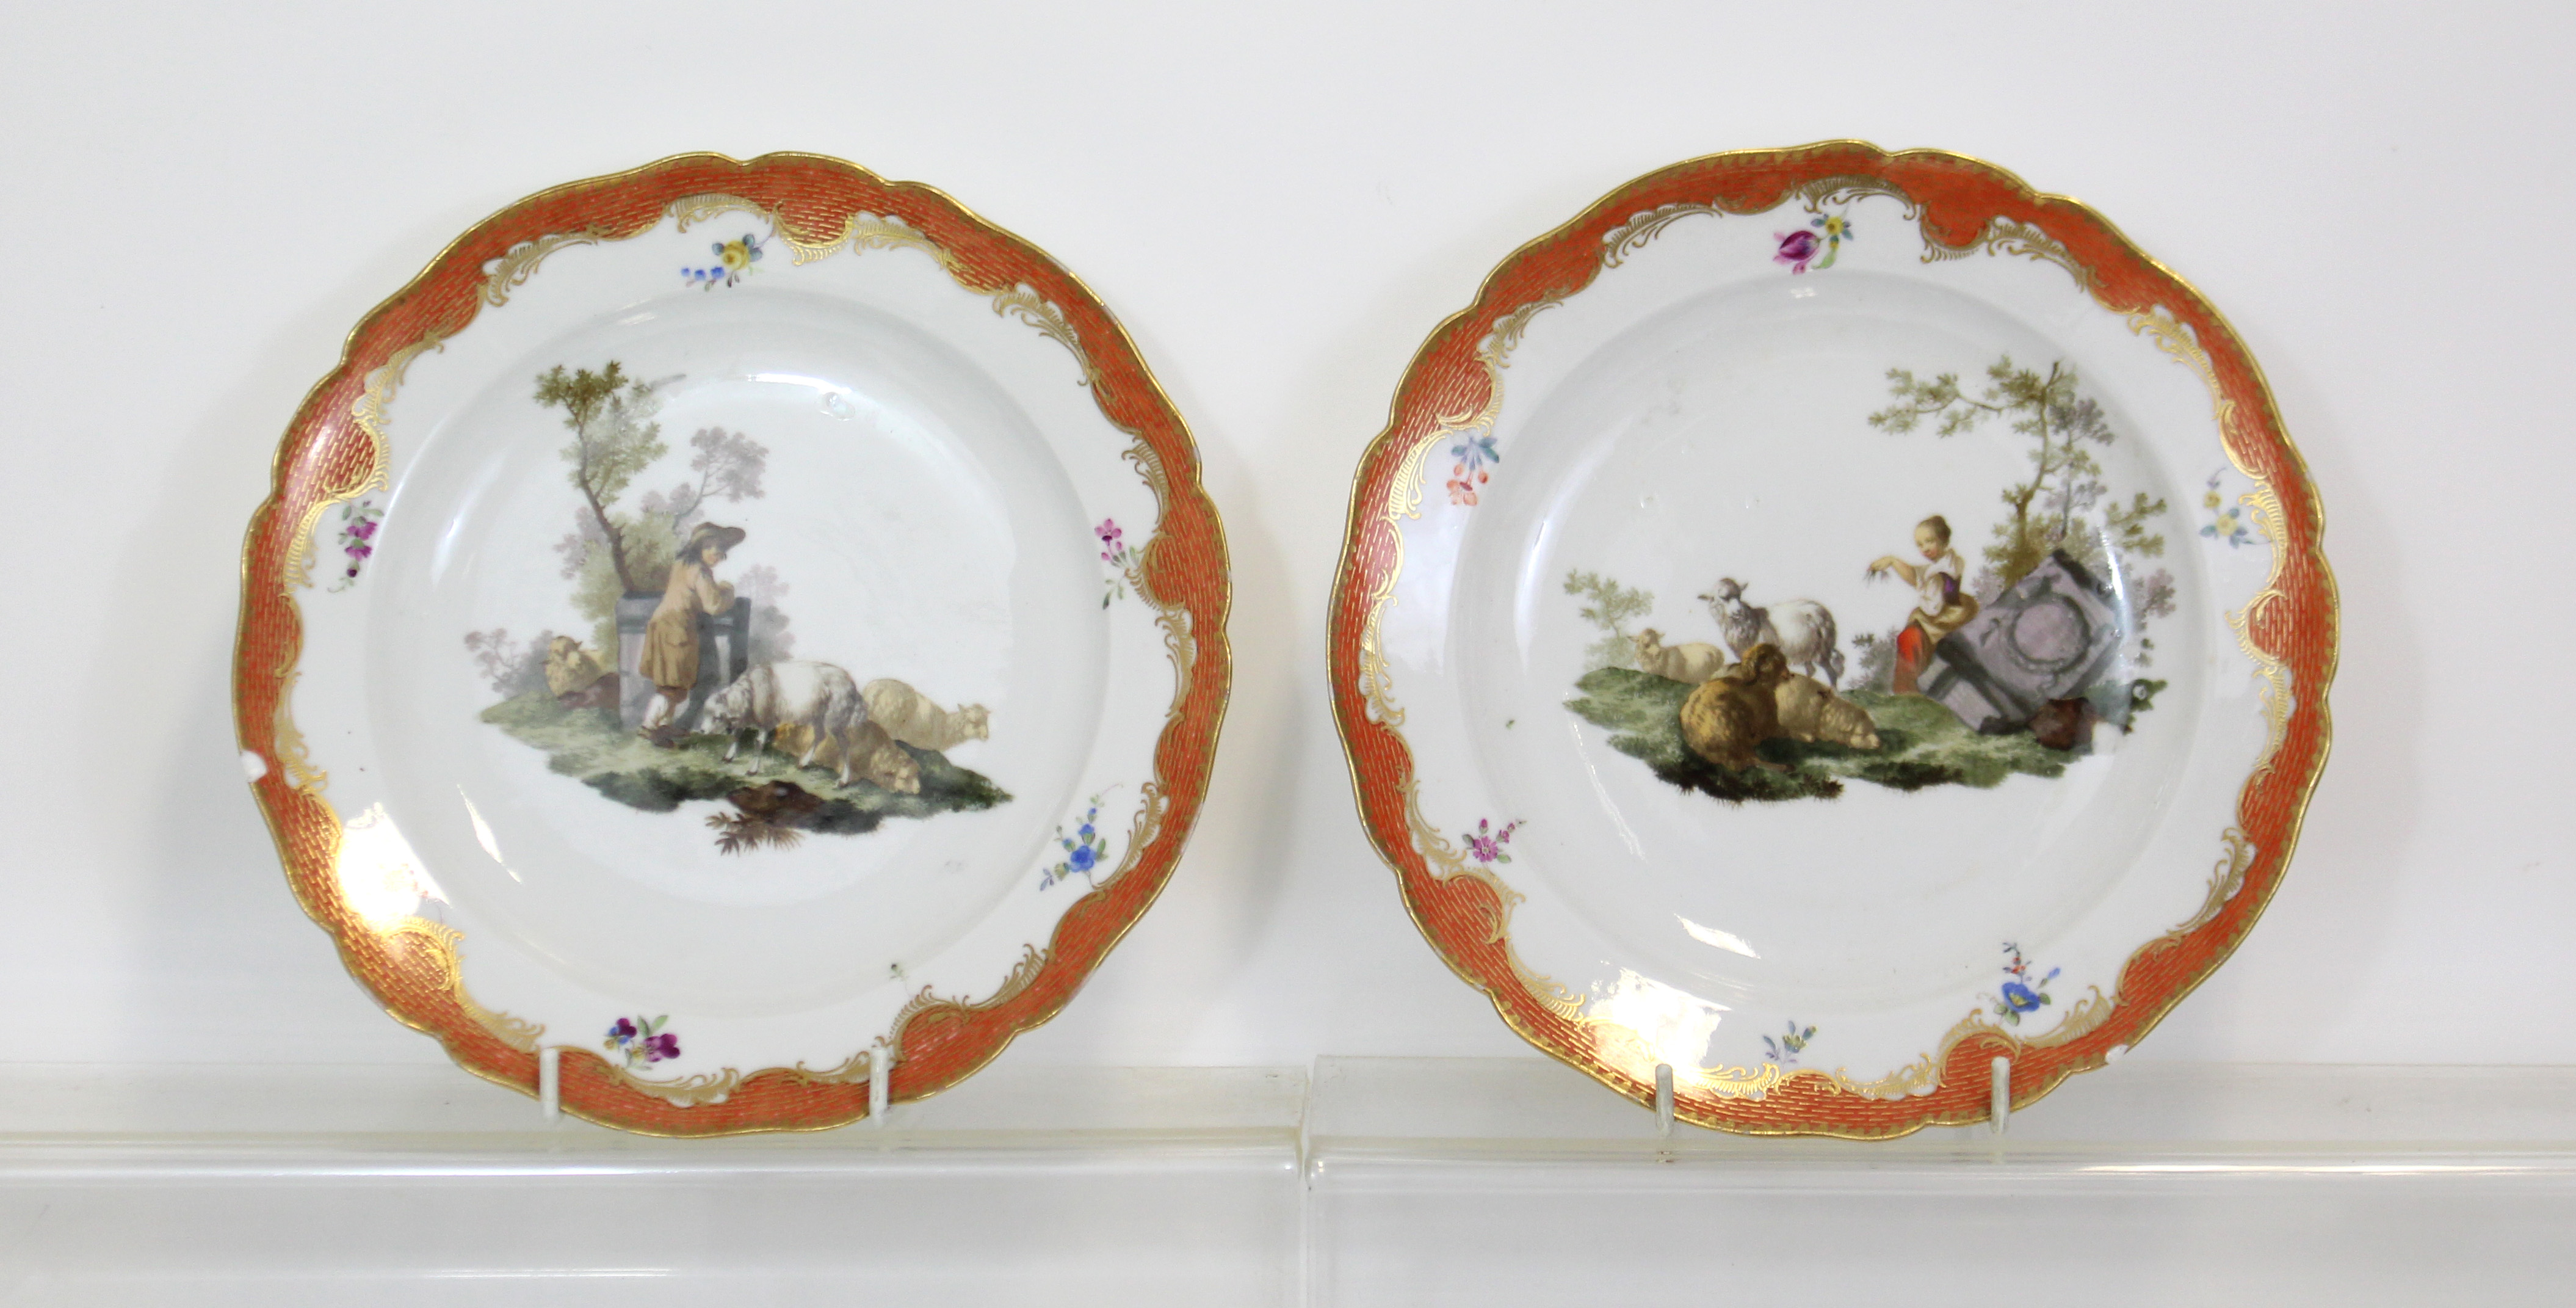 Lot 186 - A MEISSEN MARCOLINI PERIOD PART DESSERT SERVICE, comprising: a pair of comports with applied